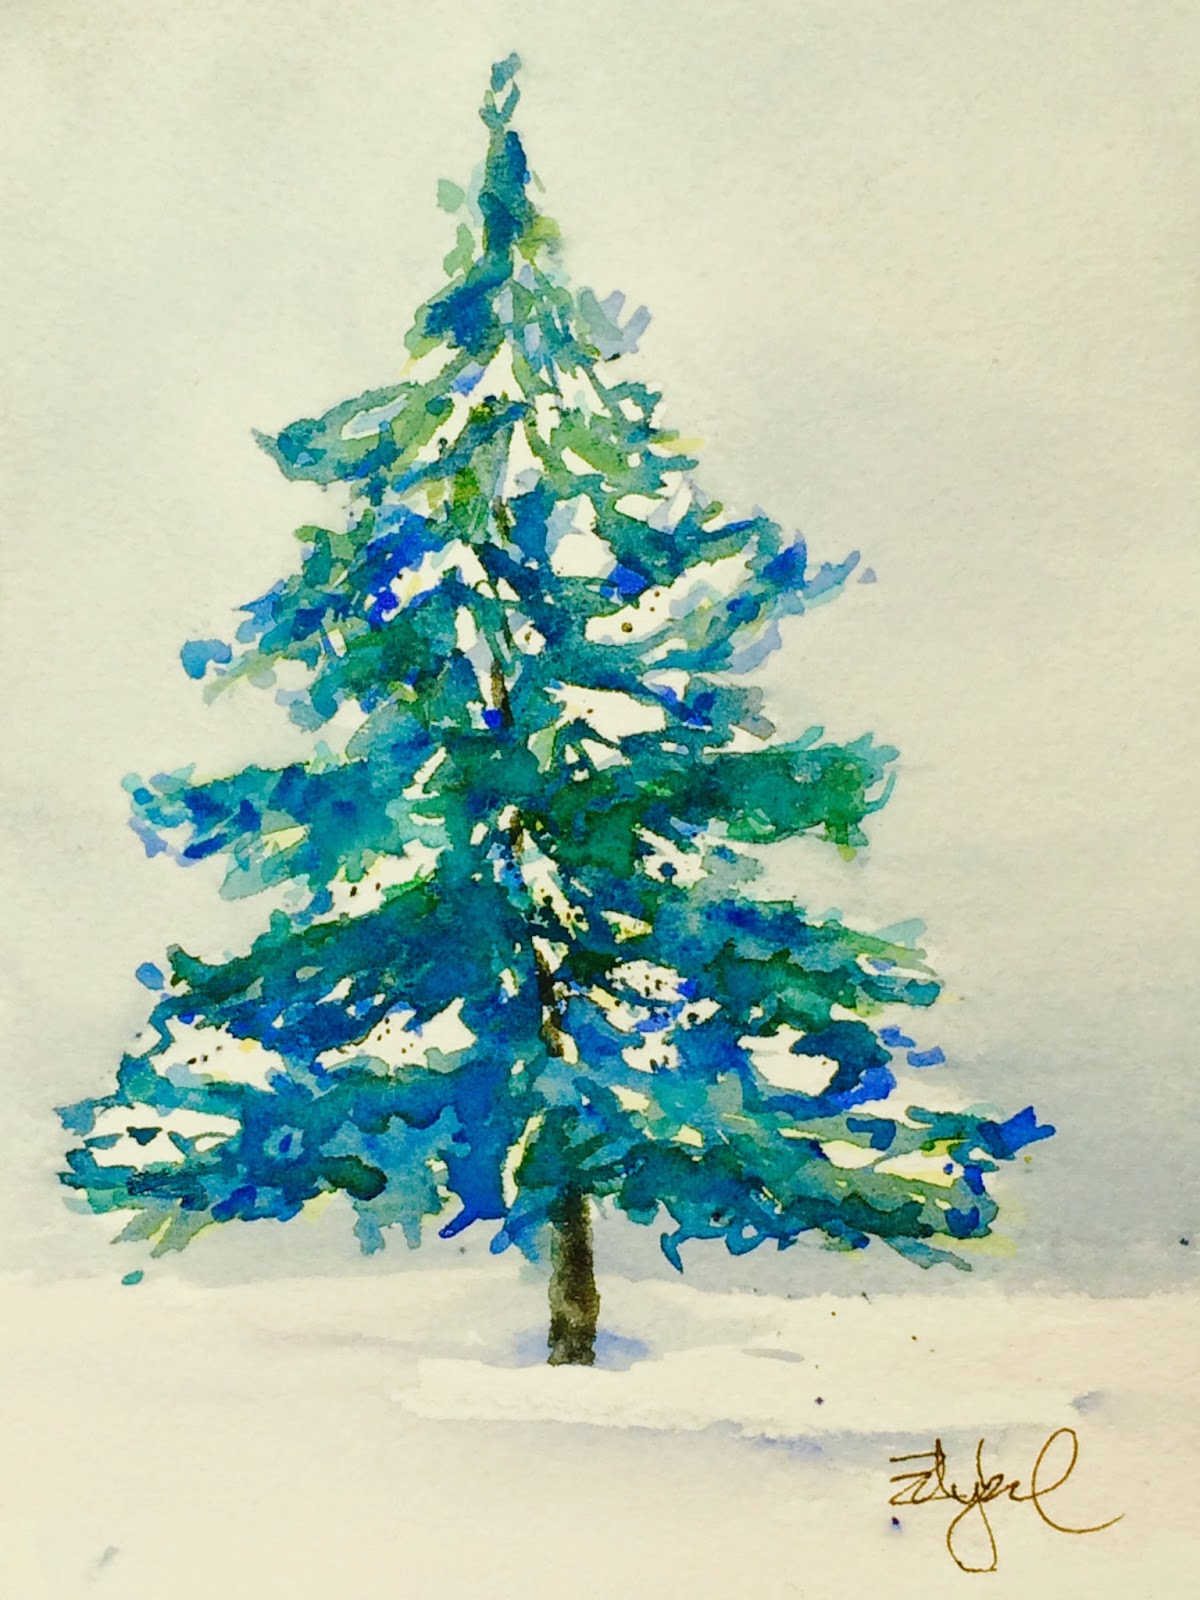 learn watercolor basics making holiday cards